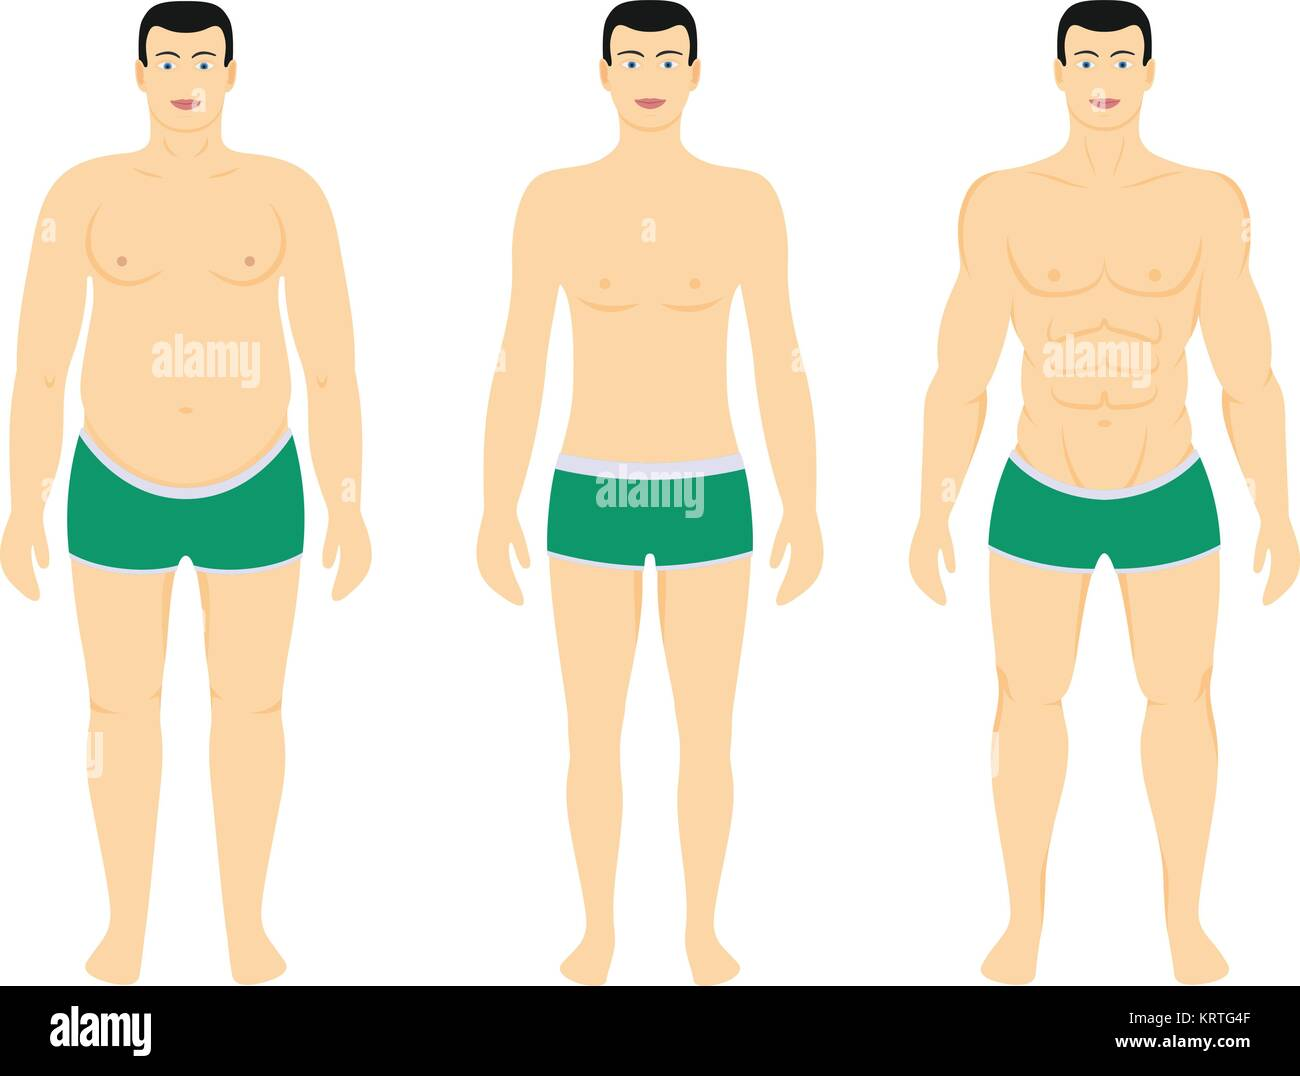 Before and After diet - Man weight loss. Vector illustration - Stock Vector